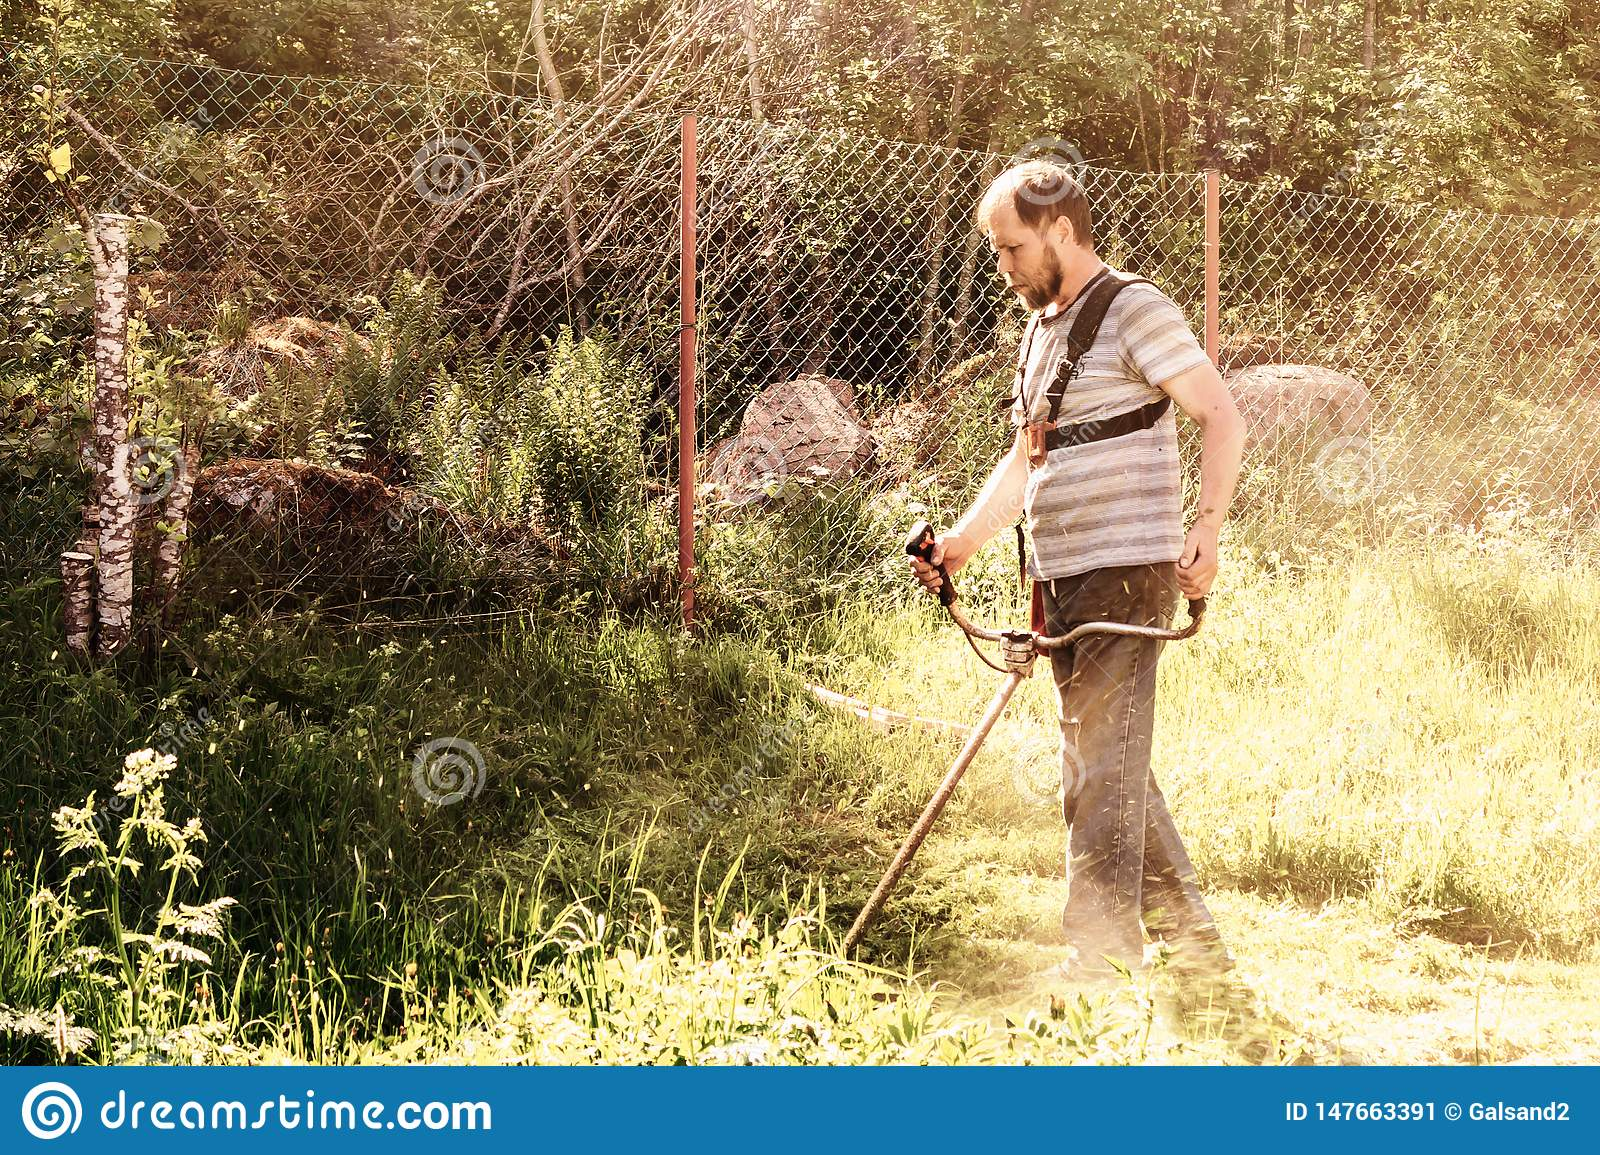 A man mows the grass in his garden with a trimmer